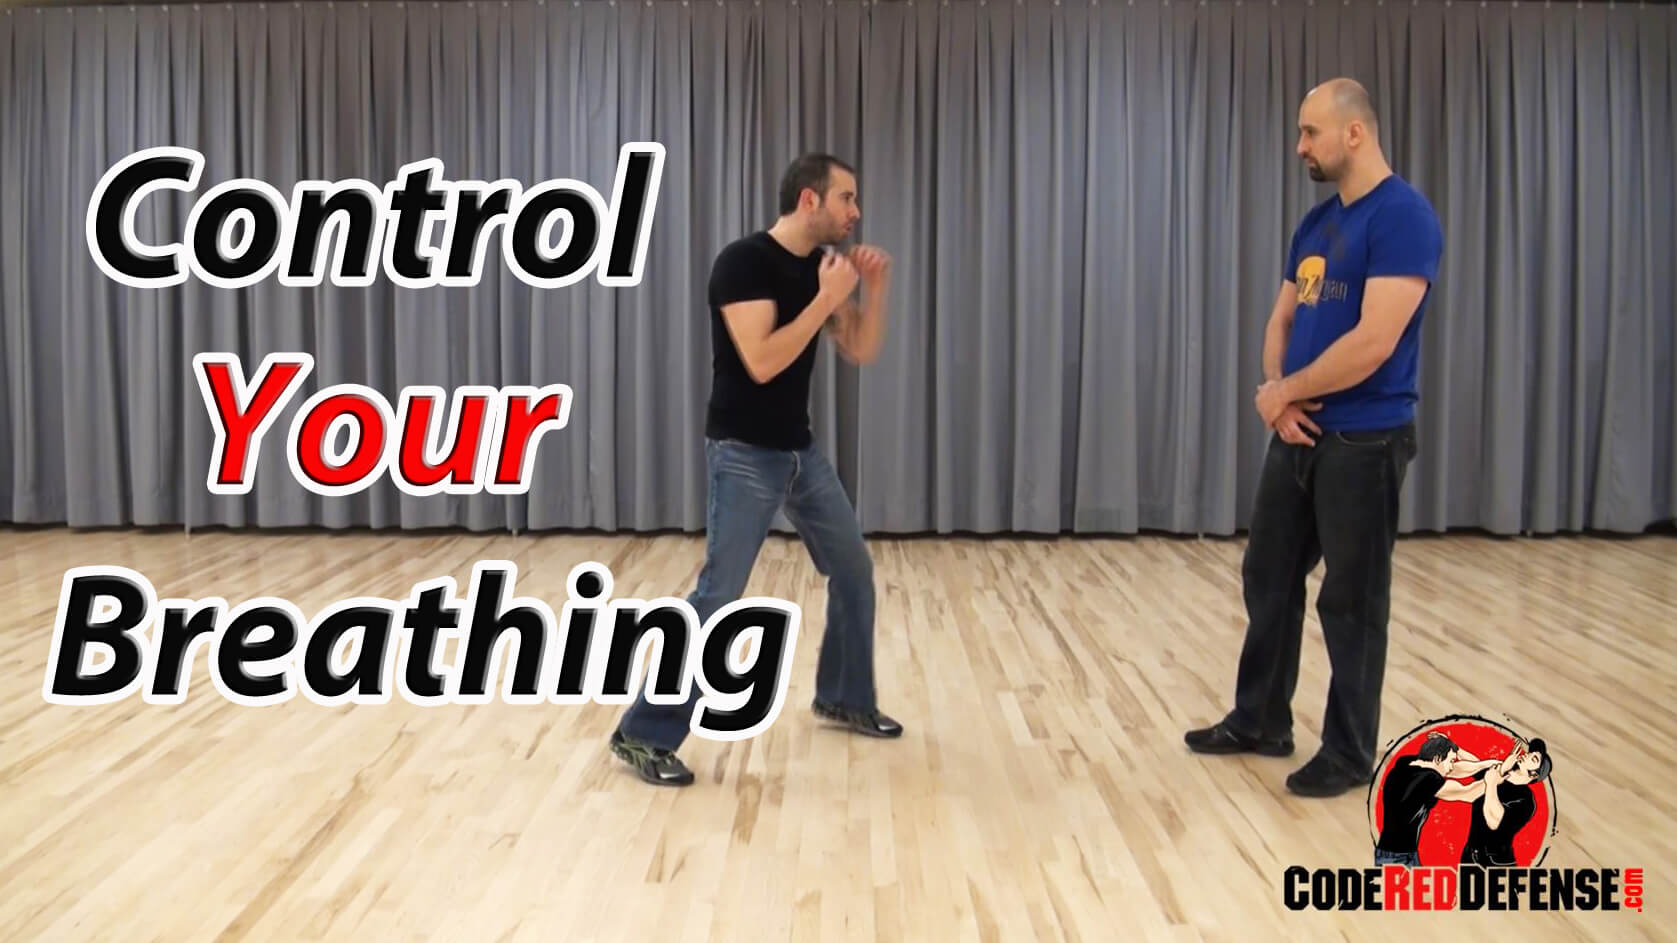 Learn how to control your breathing during a fight